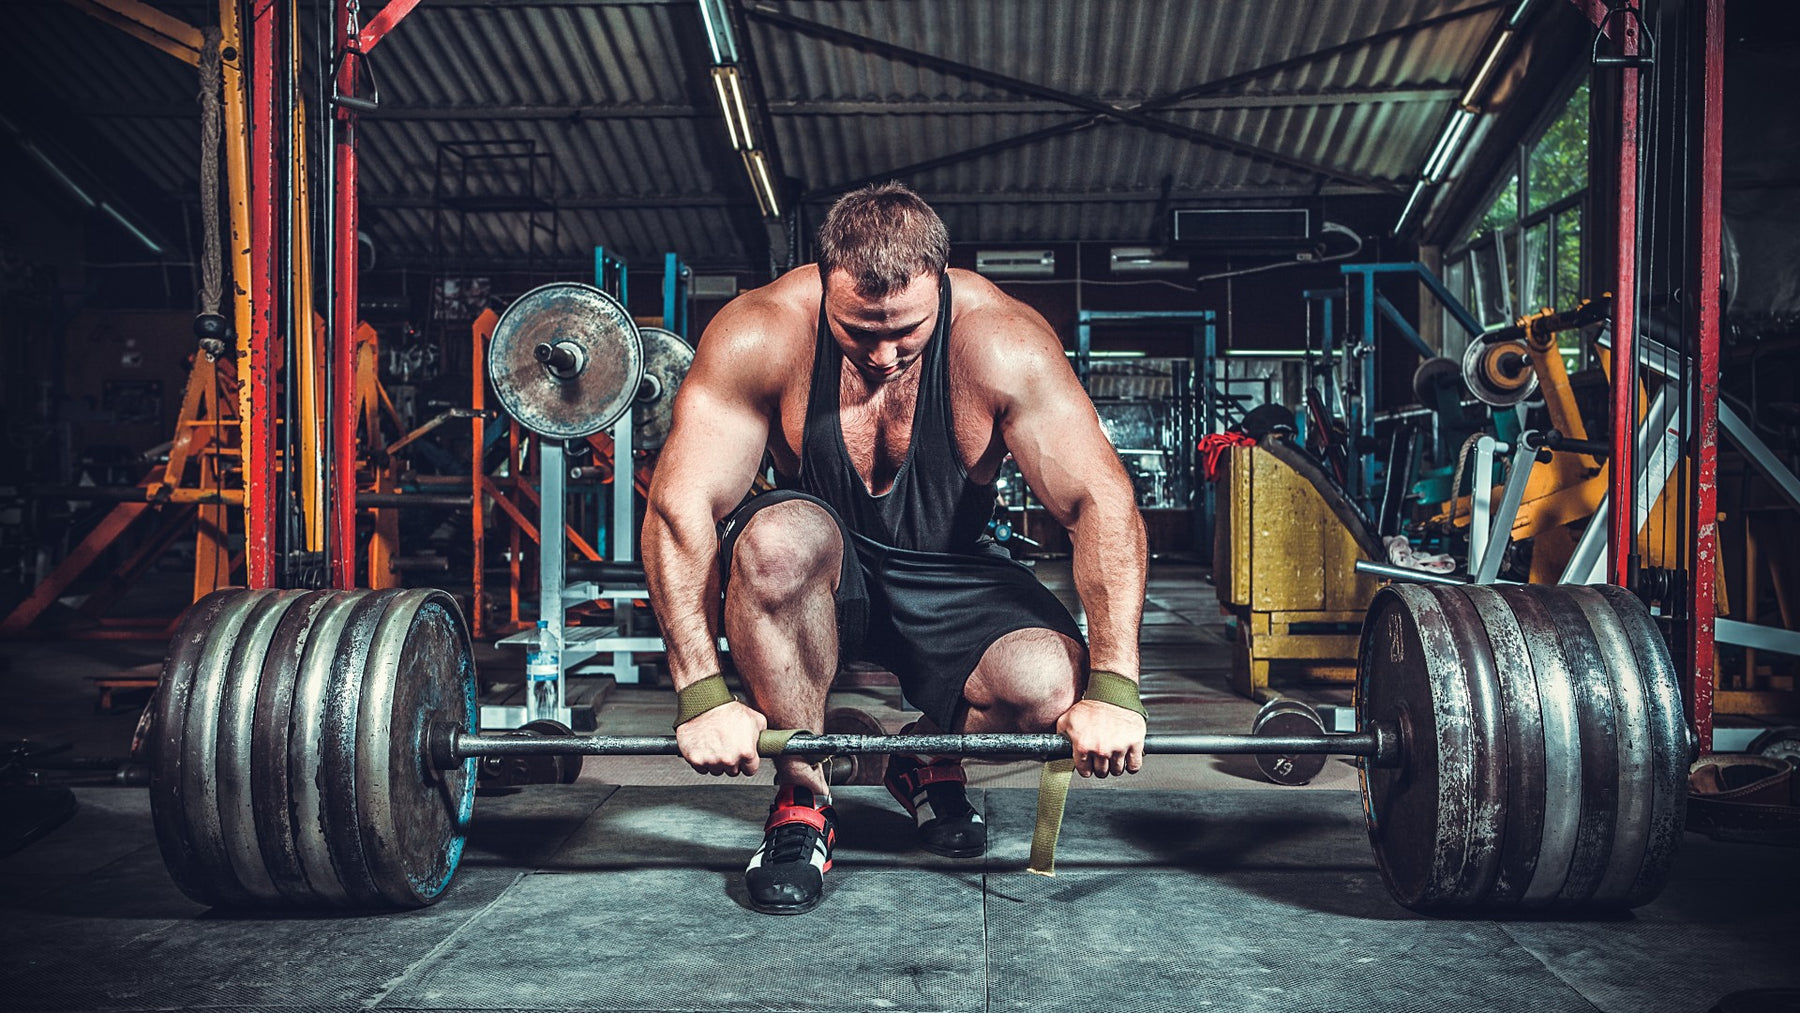 Top Muscle Building Exercises That Are Performed Incorrectly